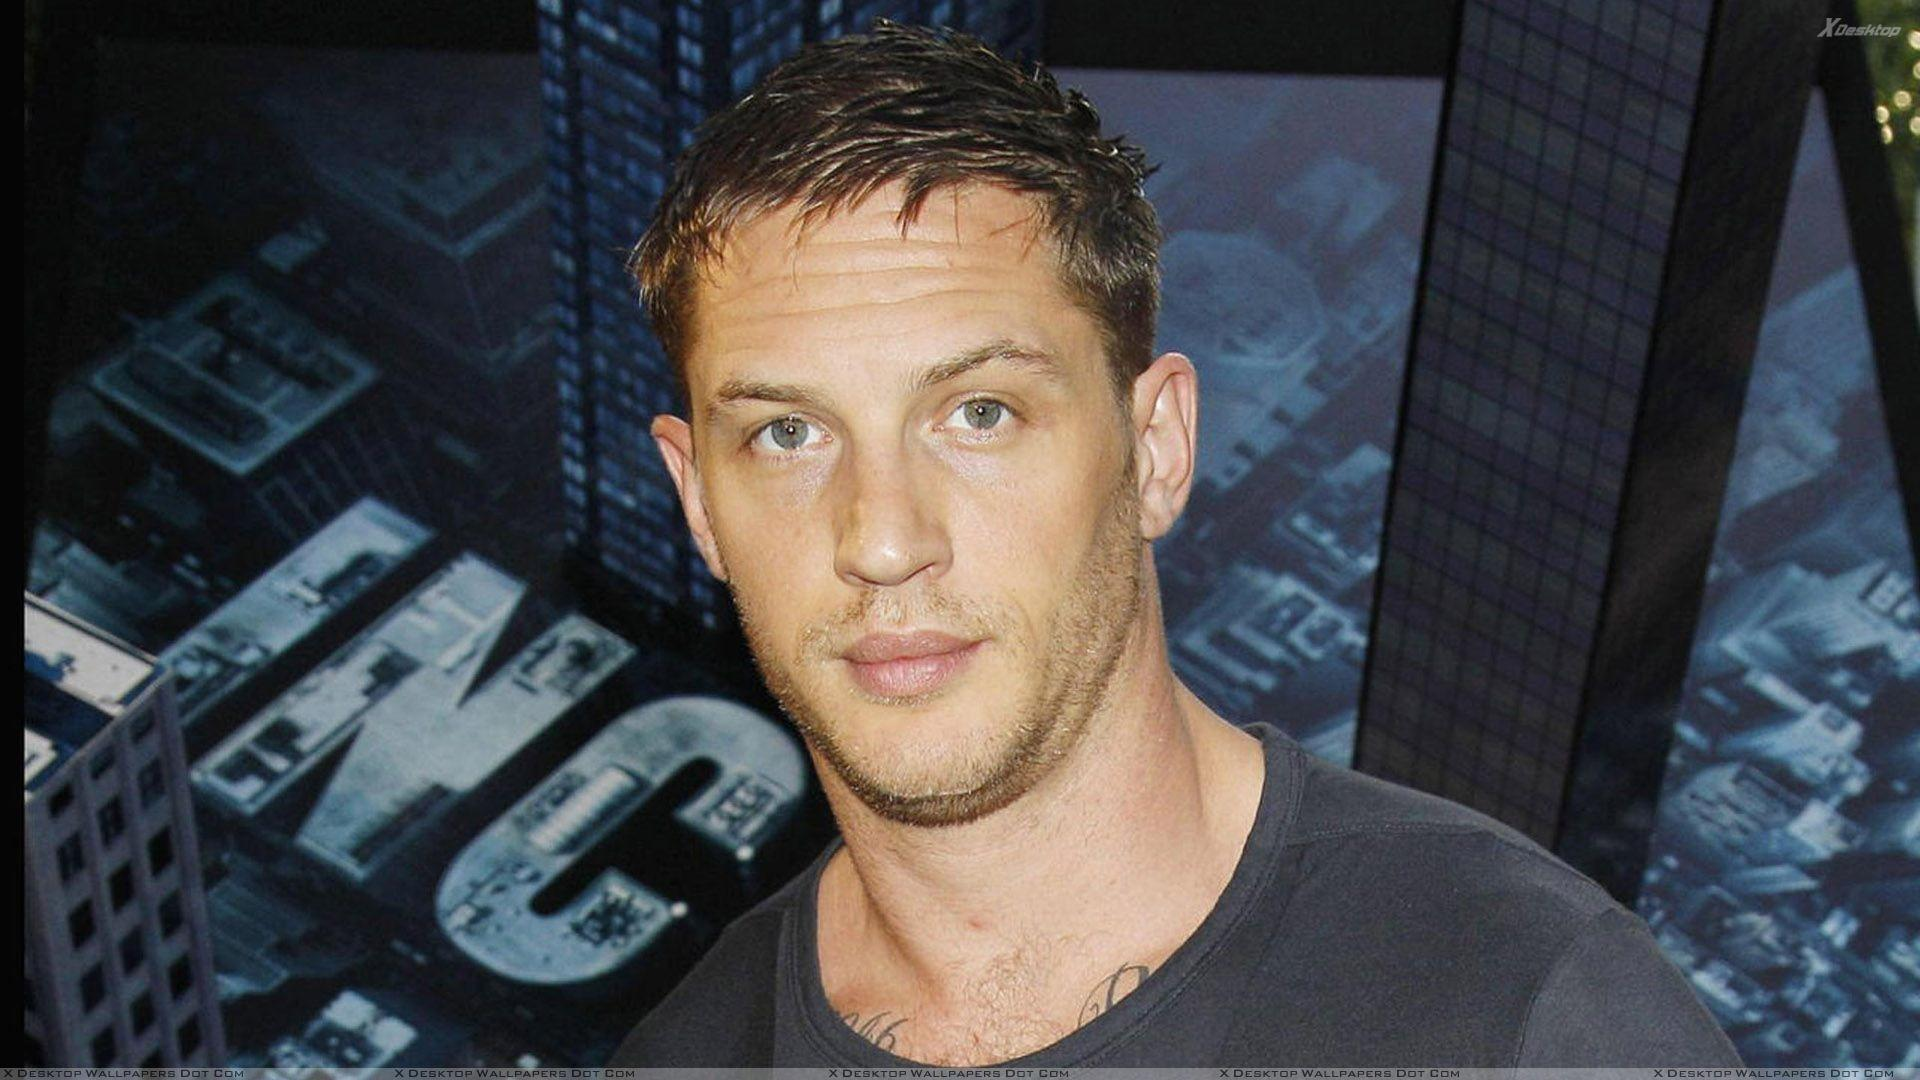 Tom Hardy Wallpapers, Photos & Image in HD